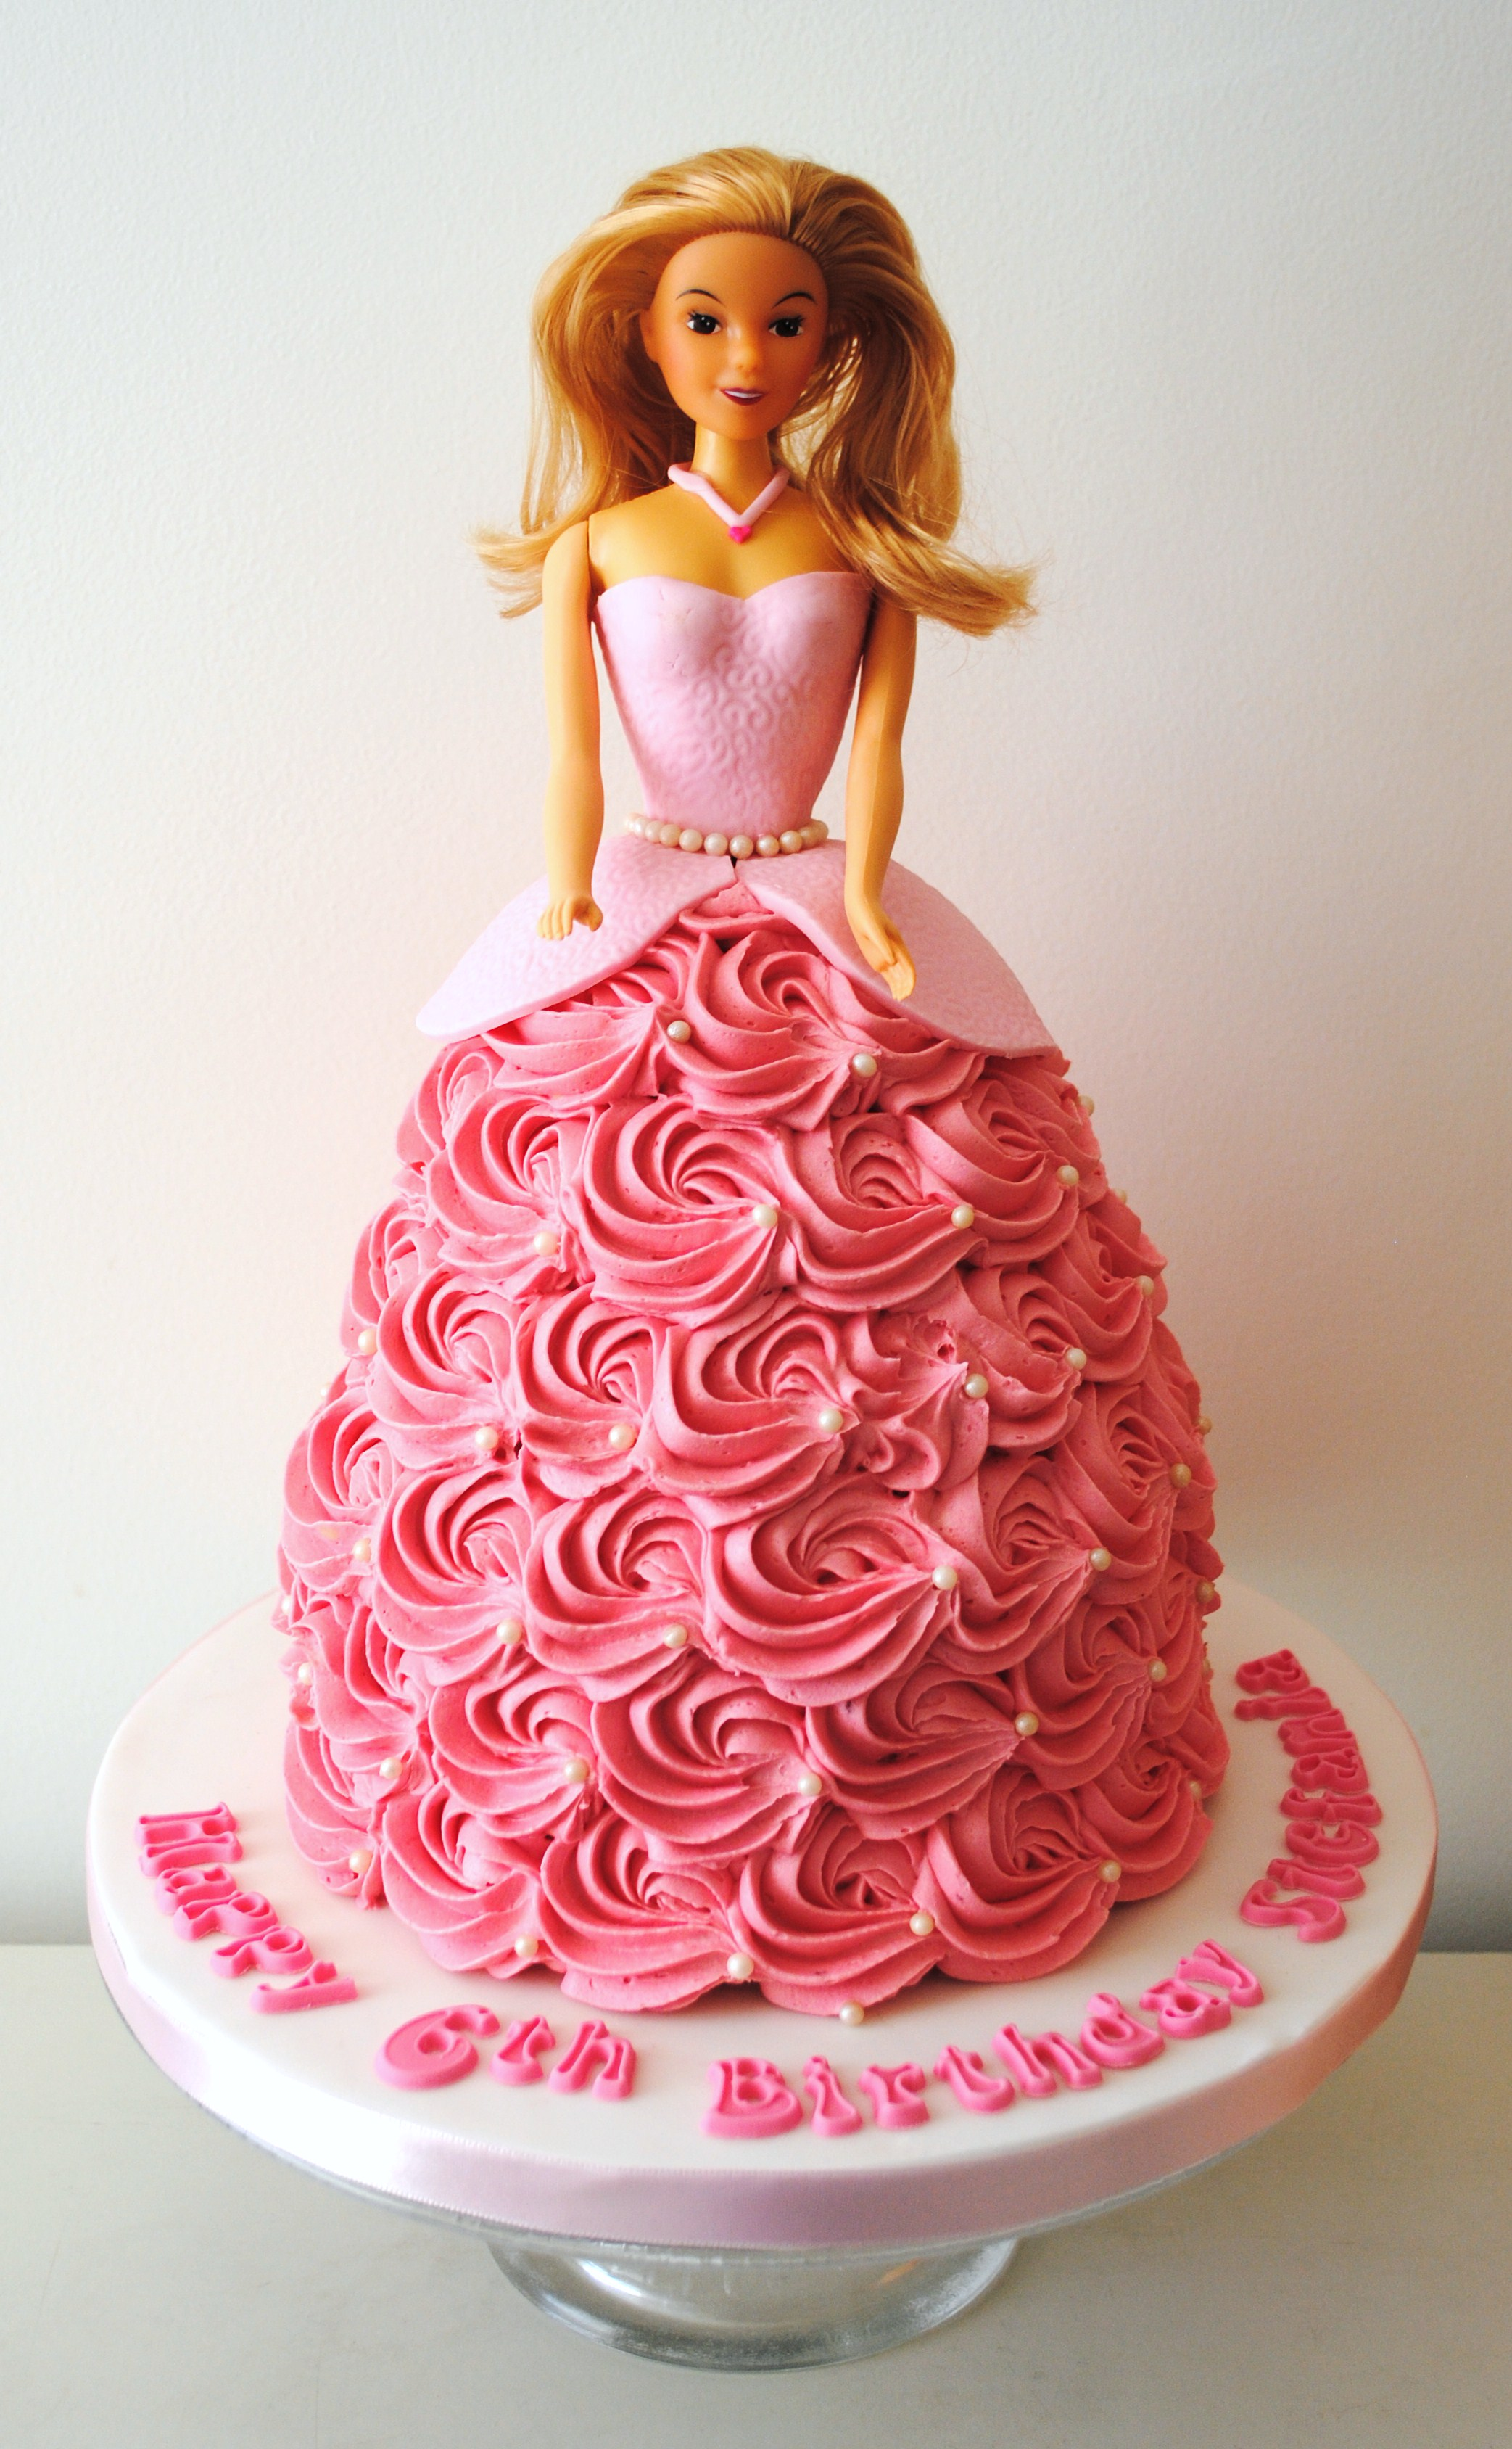 Miss Cupcakes» Blog Archive » Barbie doll dress Birthday cake